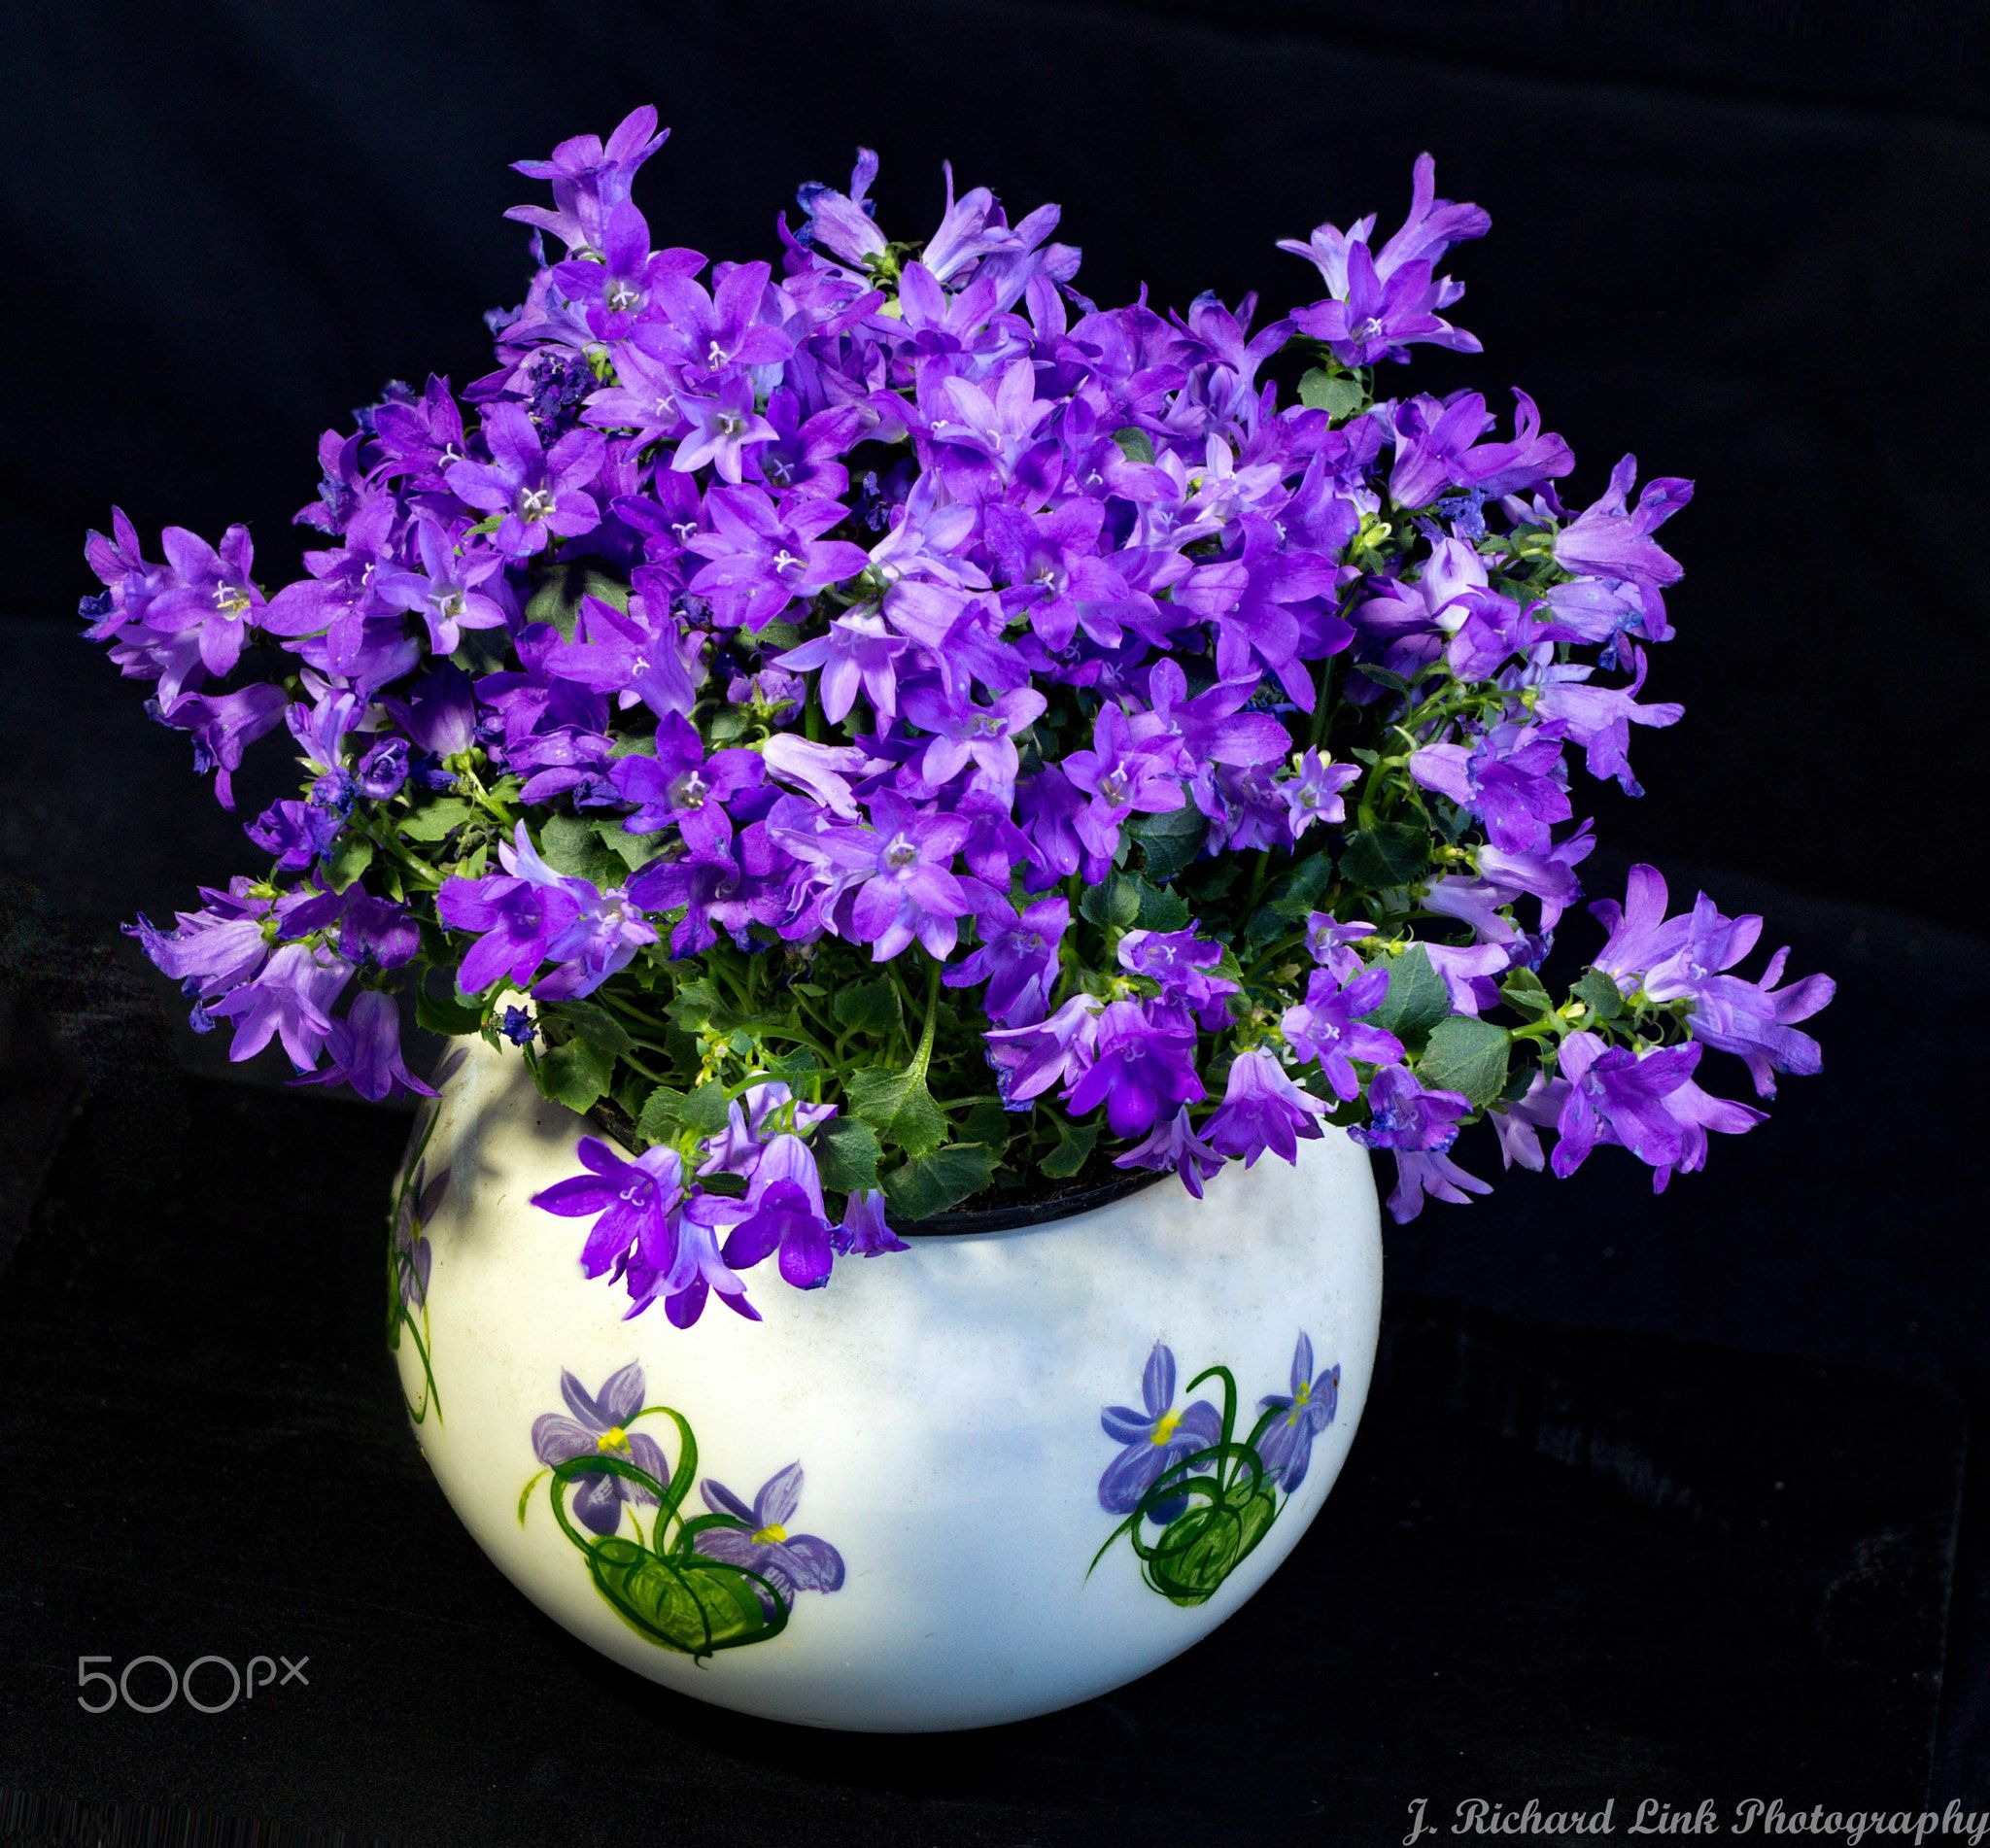 Campanula Get Mee Campanula Is One Of Several Genera In The Family Campanulaceae With The Common Name Bellflower It Takes Both Campanula Plants Bellflower